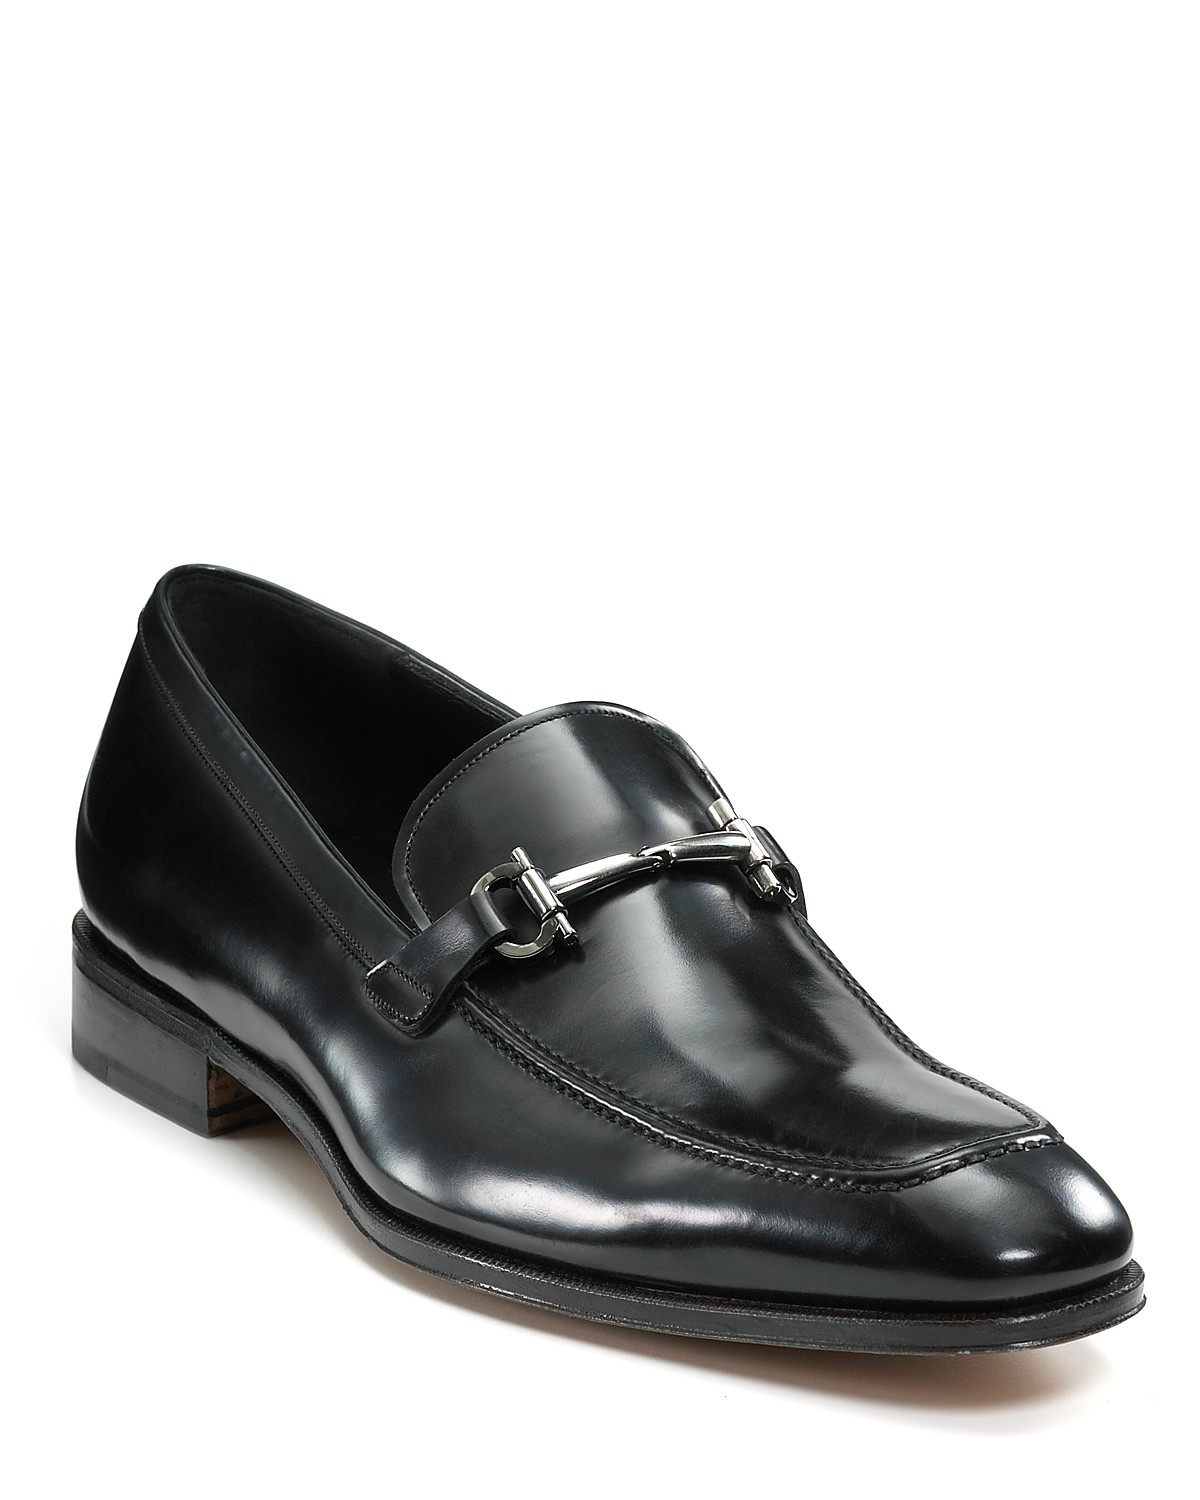 best seller for sale pick a best sale online Salvatore Ferragamo Patent Leather Gancini Loafers good selling online for sale under $60 clearance explore 8sVLcZ2gro